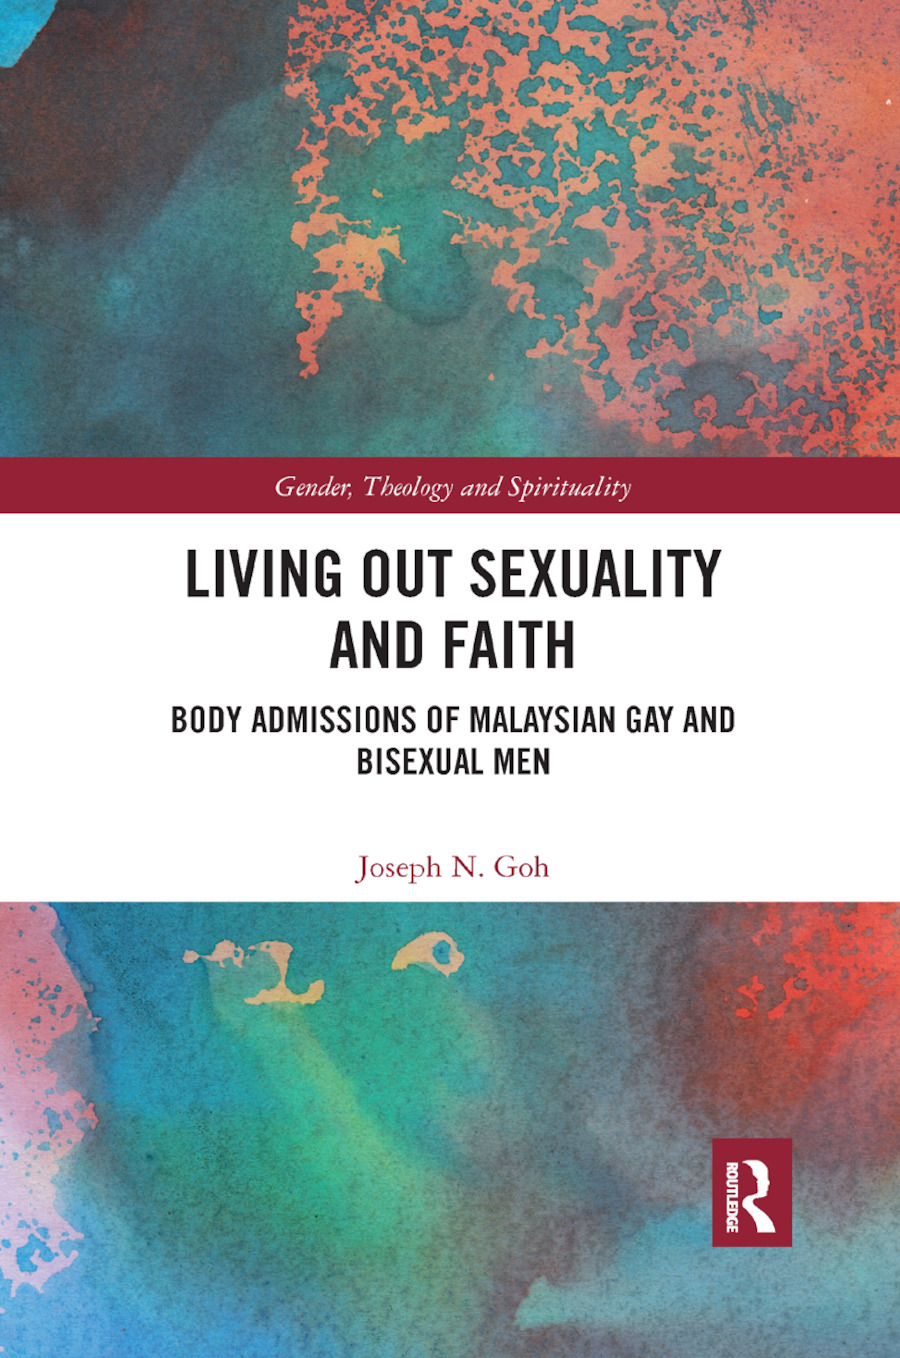 Living Out Sexuality and Faith: Body Admissions of Malaysian Gay and Bisexual Men book cover